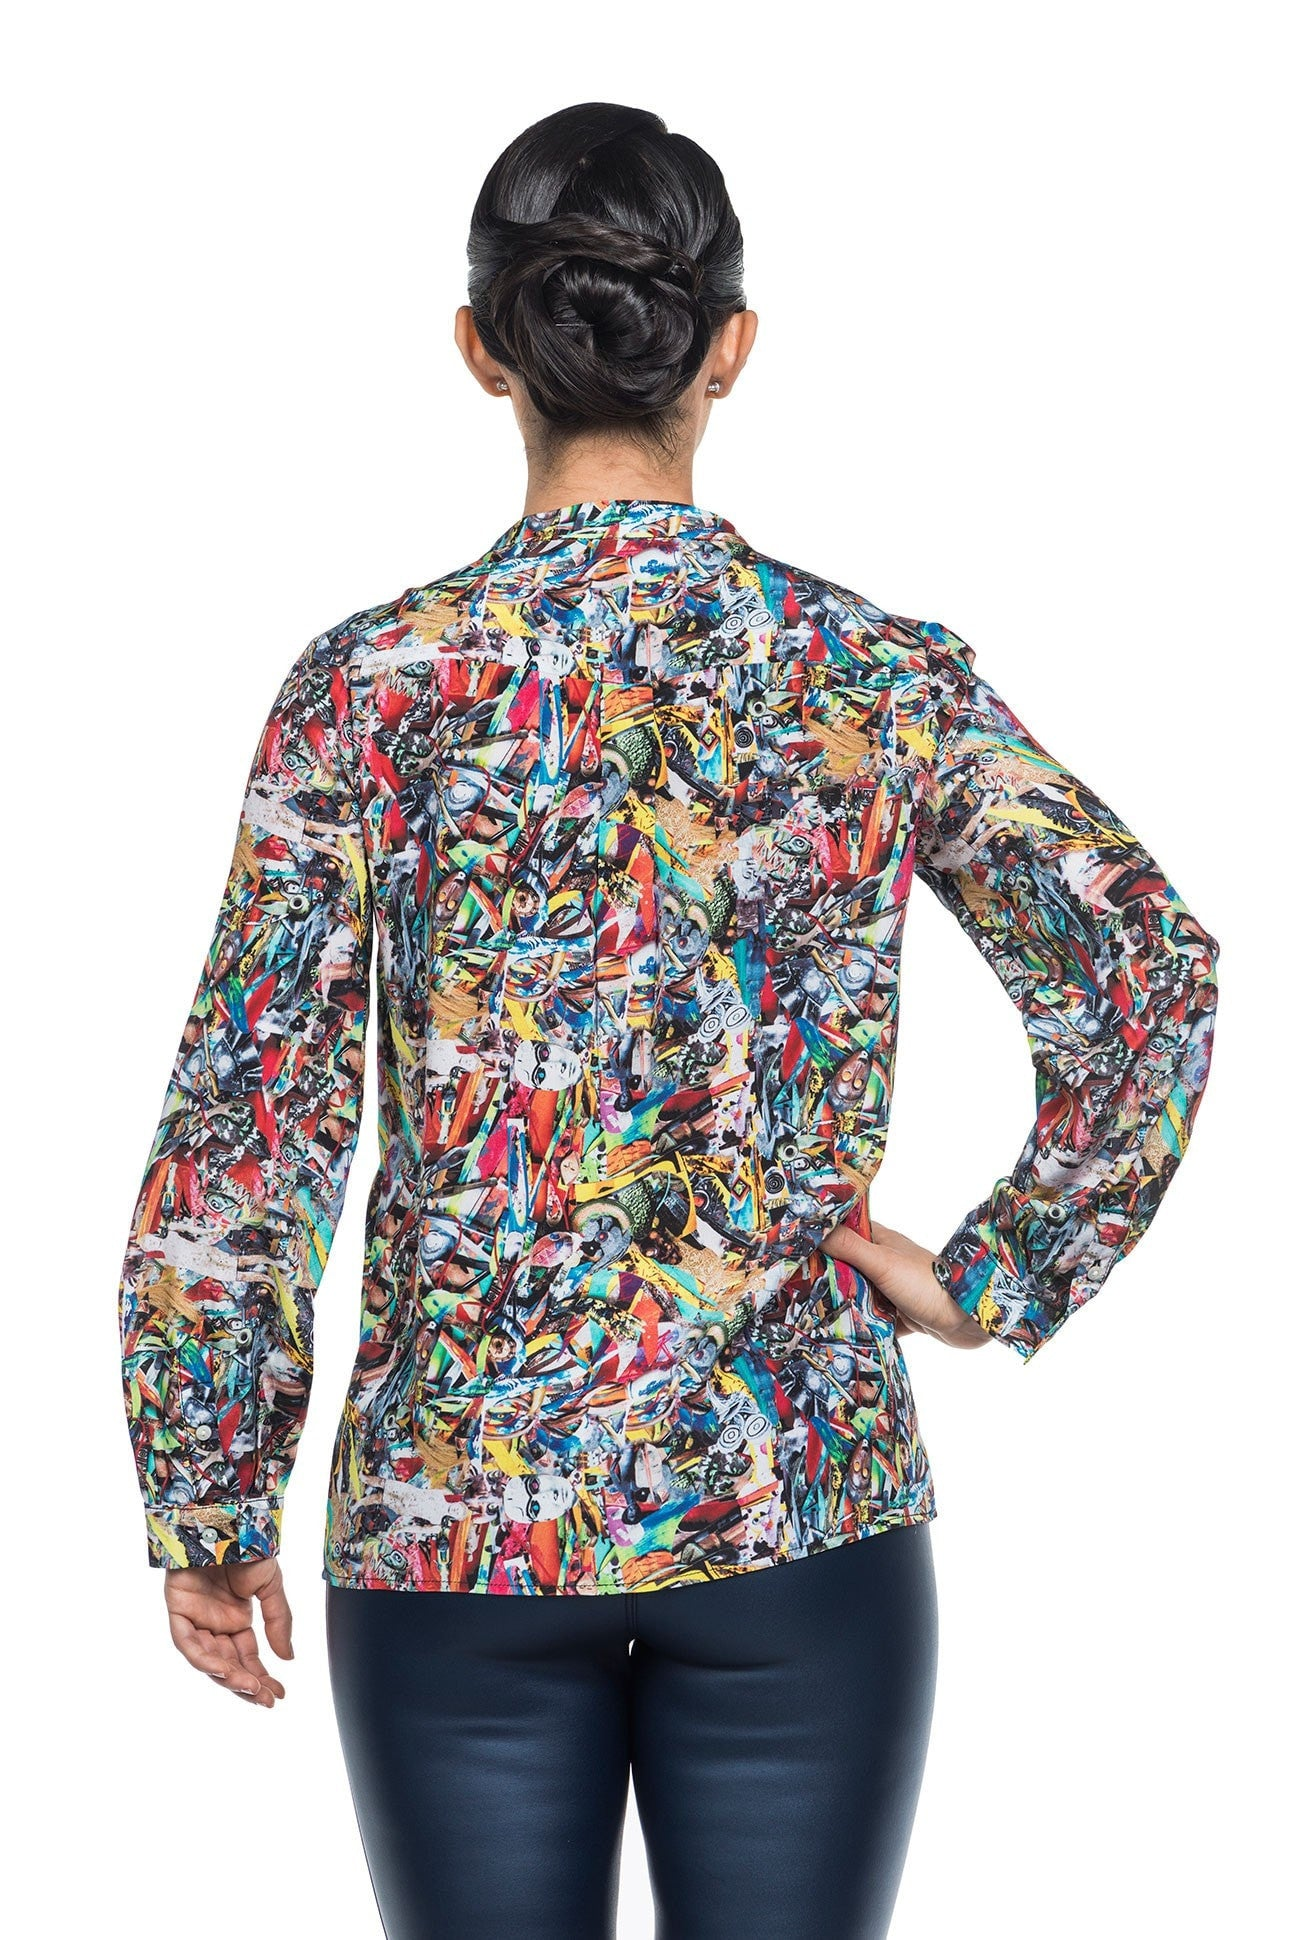 Muse Silk Blouse - Colorful Warrior Print Blouses - artTECA